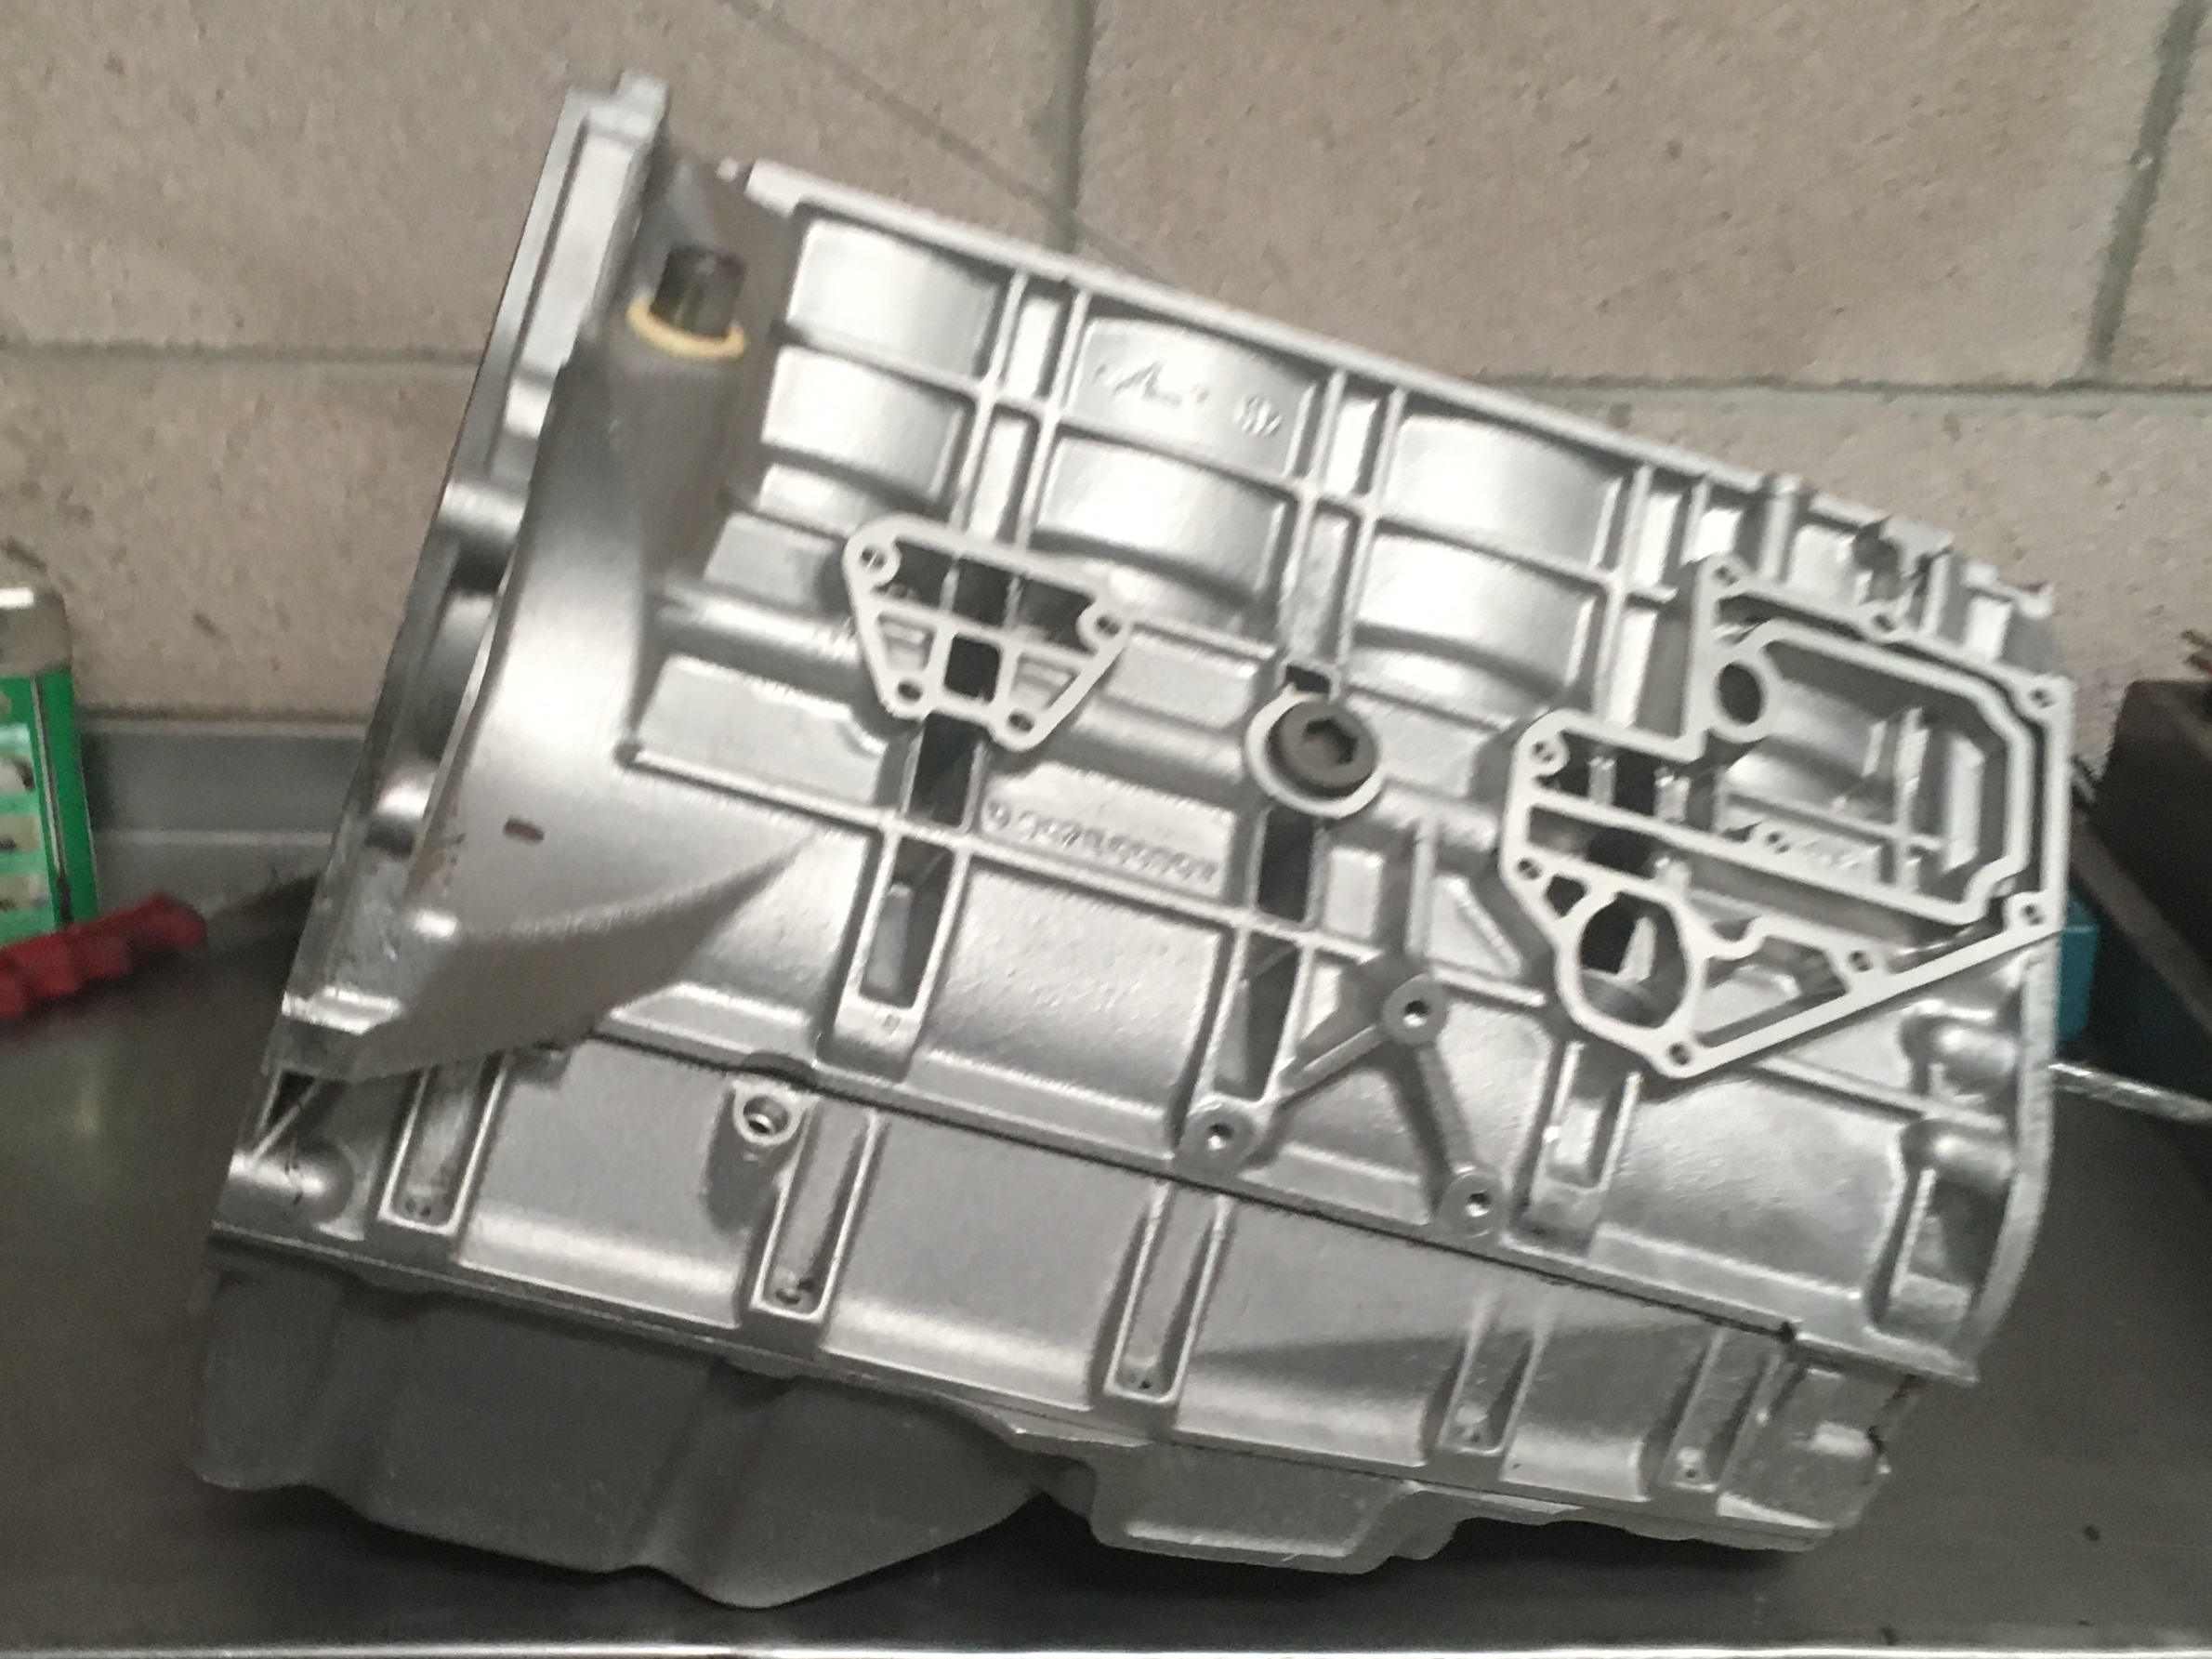 Lotus Esprit 4 Cylinder 900 series engine block after the Esprit Enginering aqua shot blasting process ready for inspection.